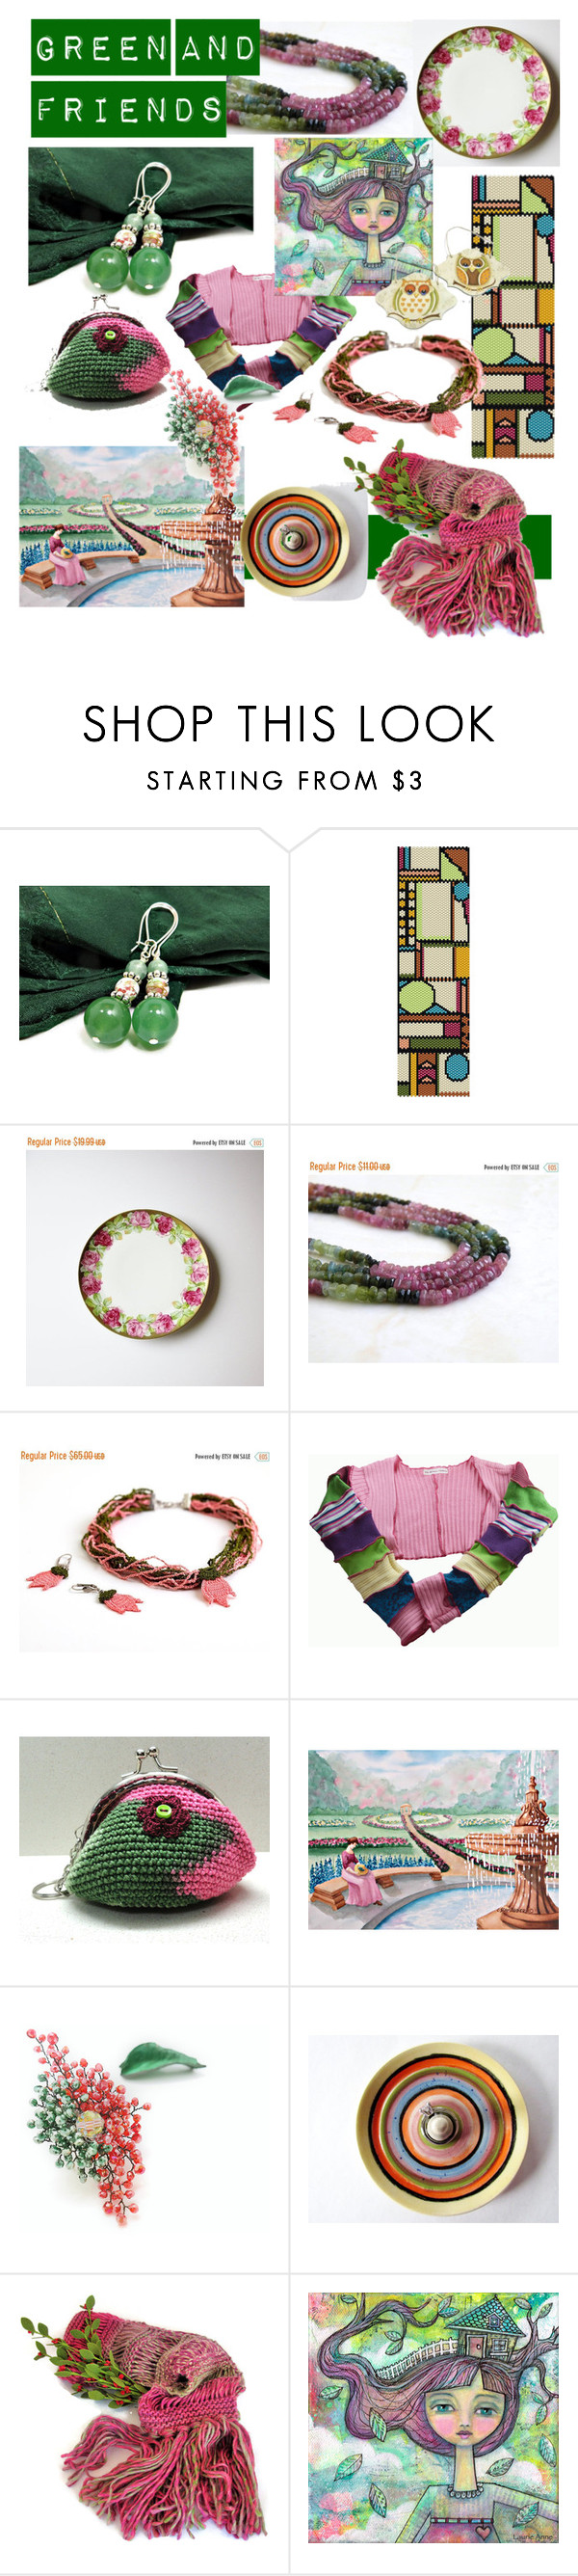 Green and Friends by clschmauder on Polyvore featuring interior, interiors, interior design, home, home decor, interior decorating, Home, jewelry, bags and accessories